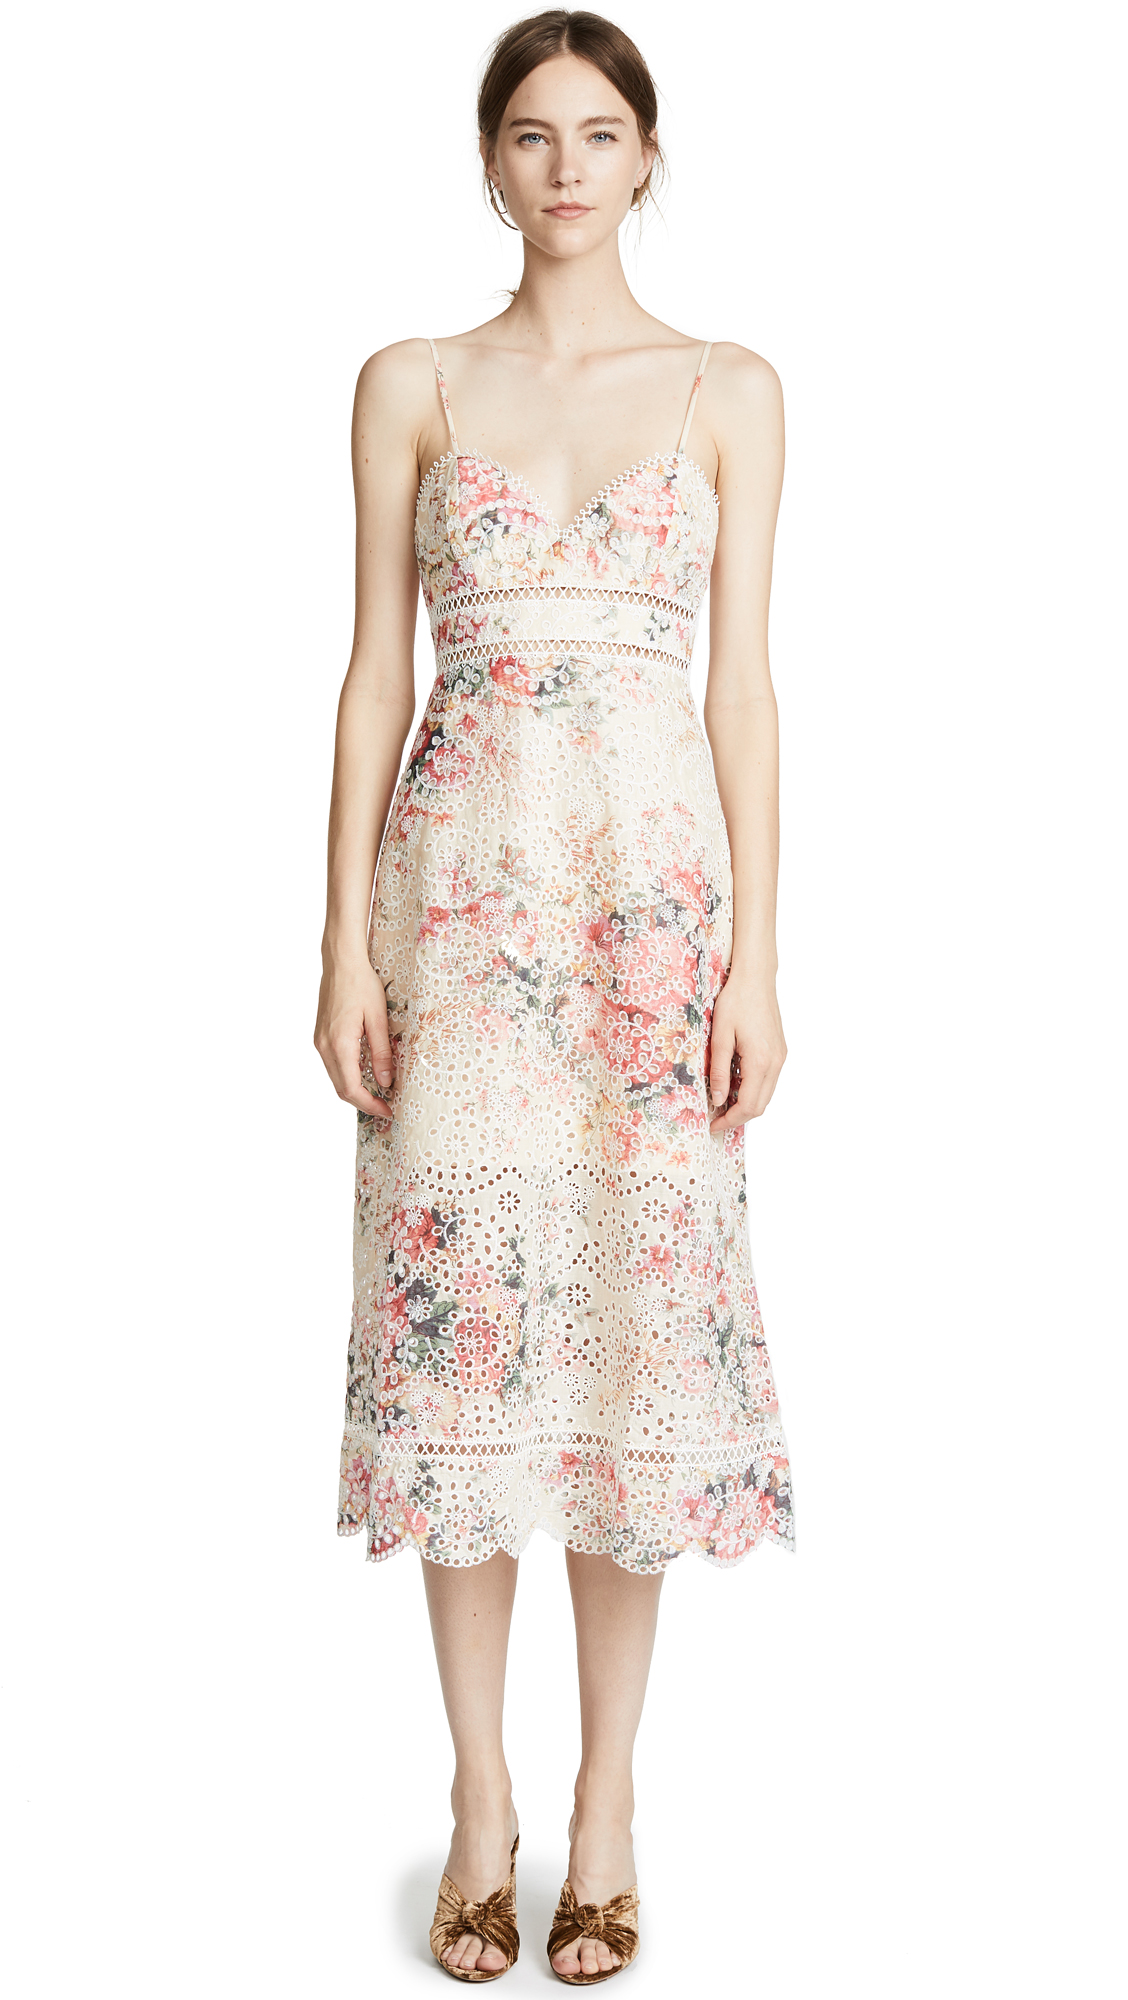 Zimmermann Laelia Diamond Bralette Dress - Meadow Floral